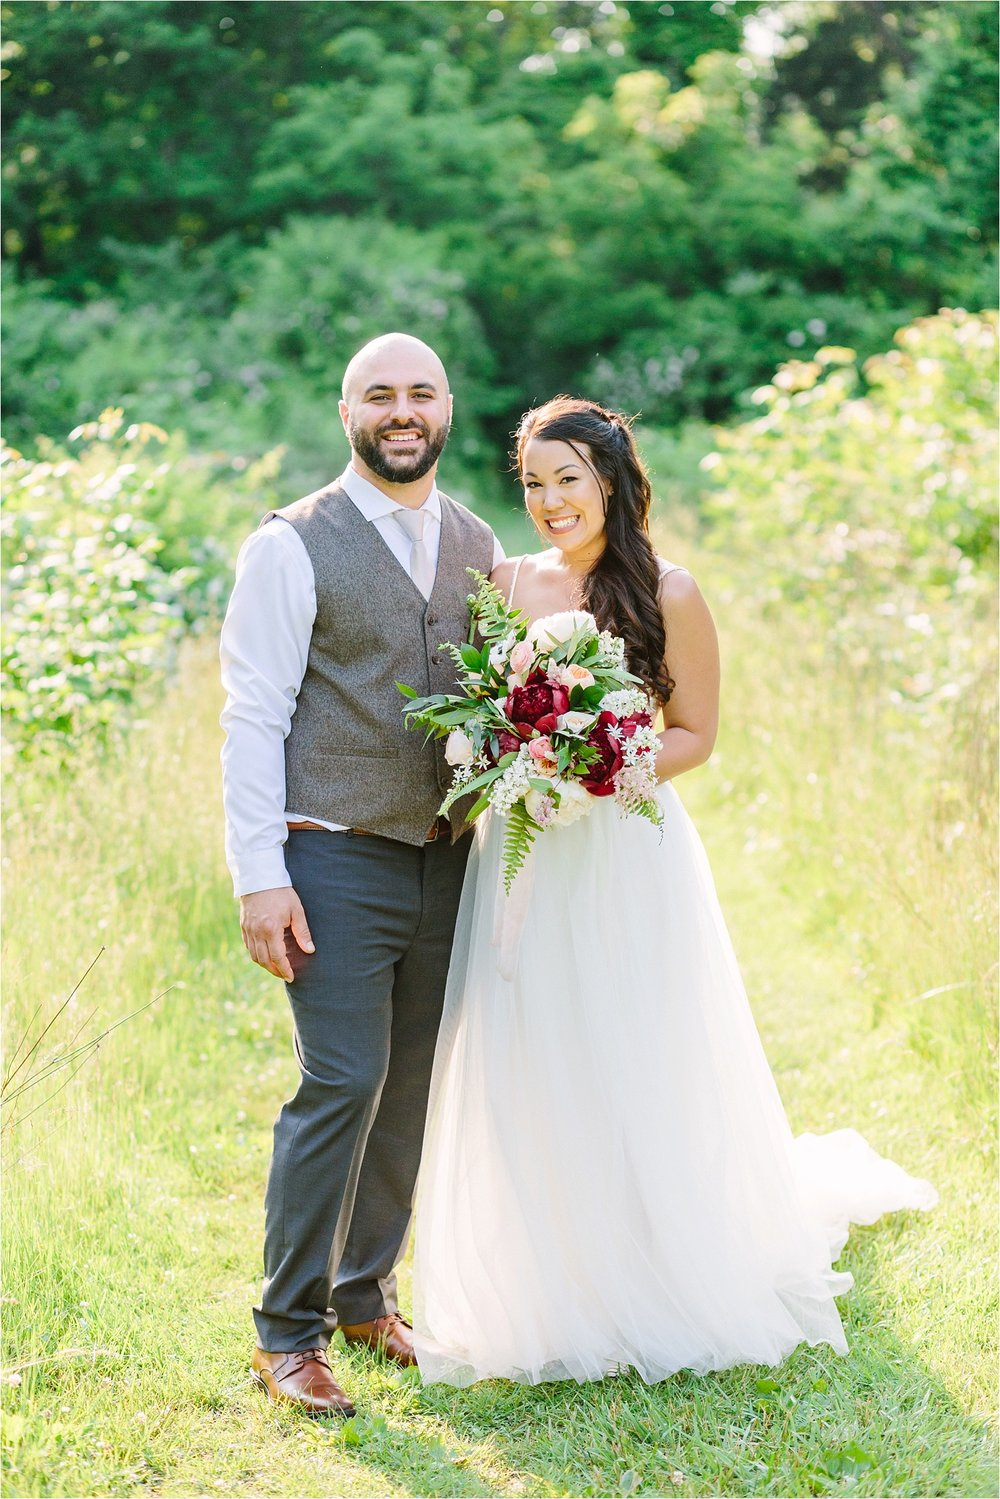 Their summer wedding in  Cuyahoga Valley National Park  was one for the books!